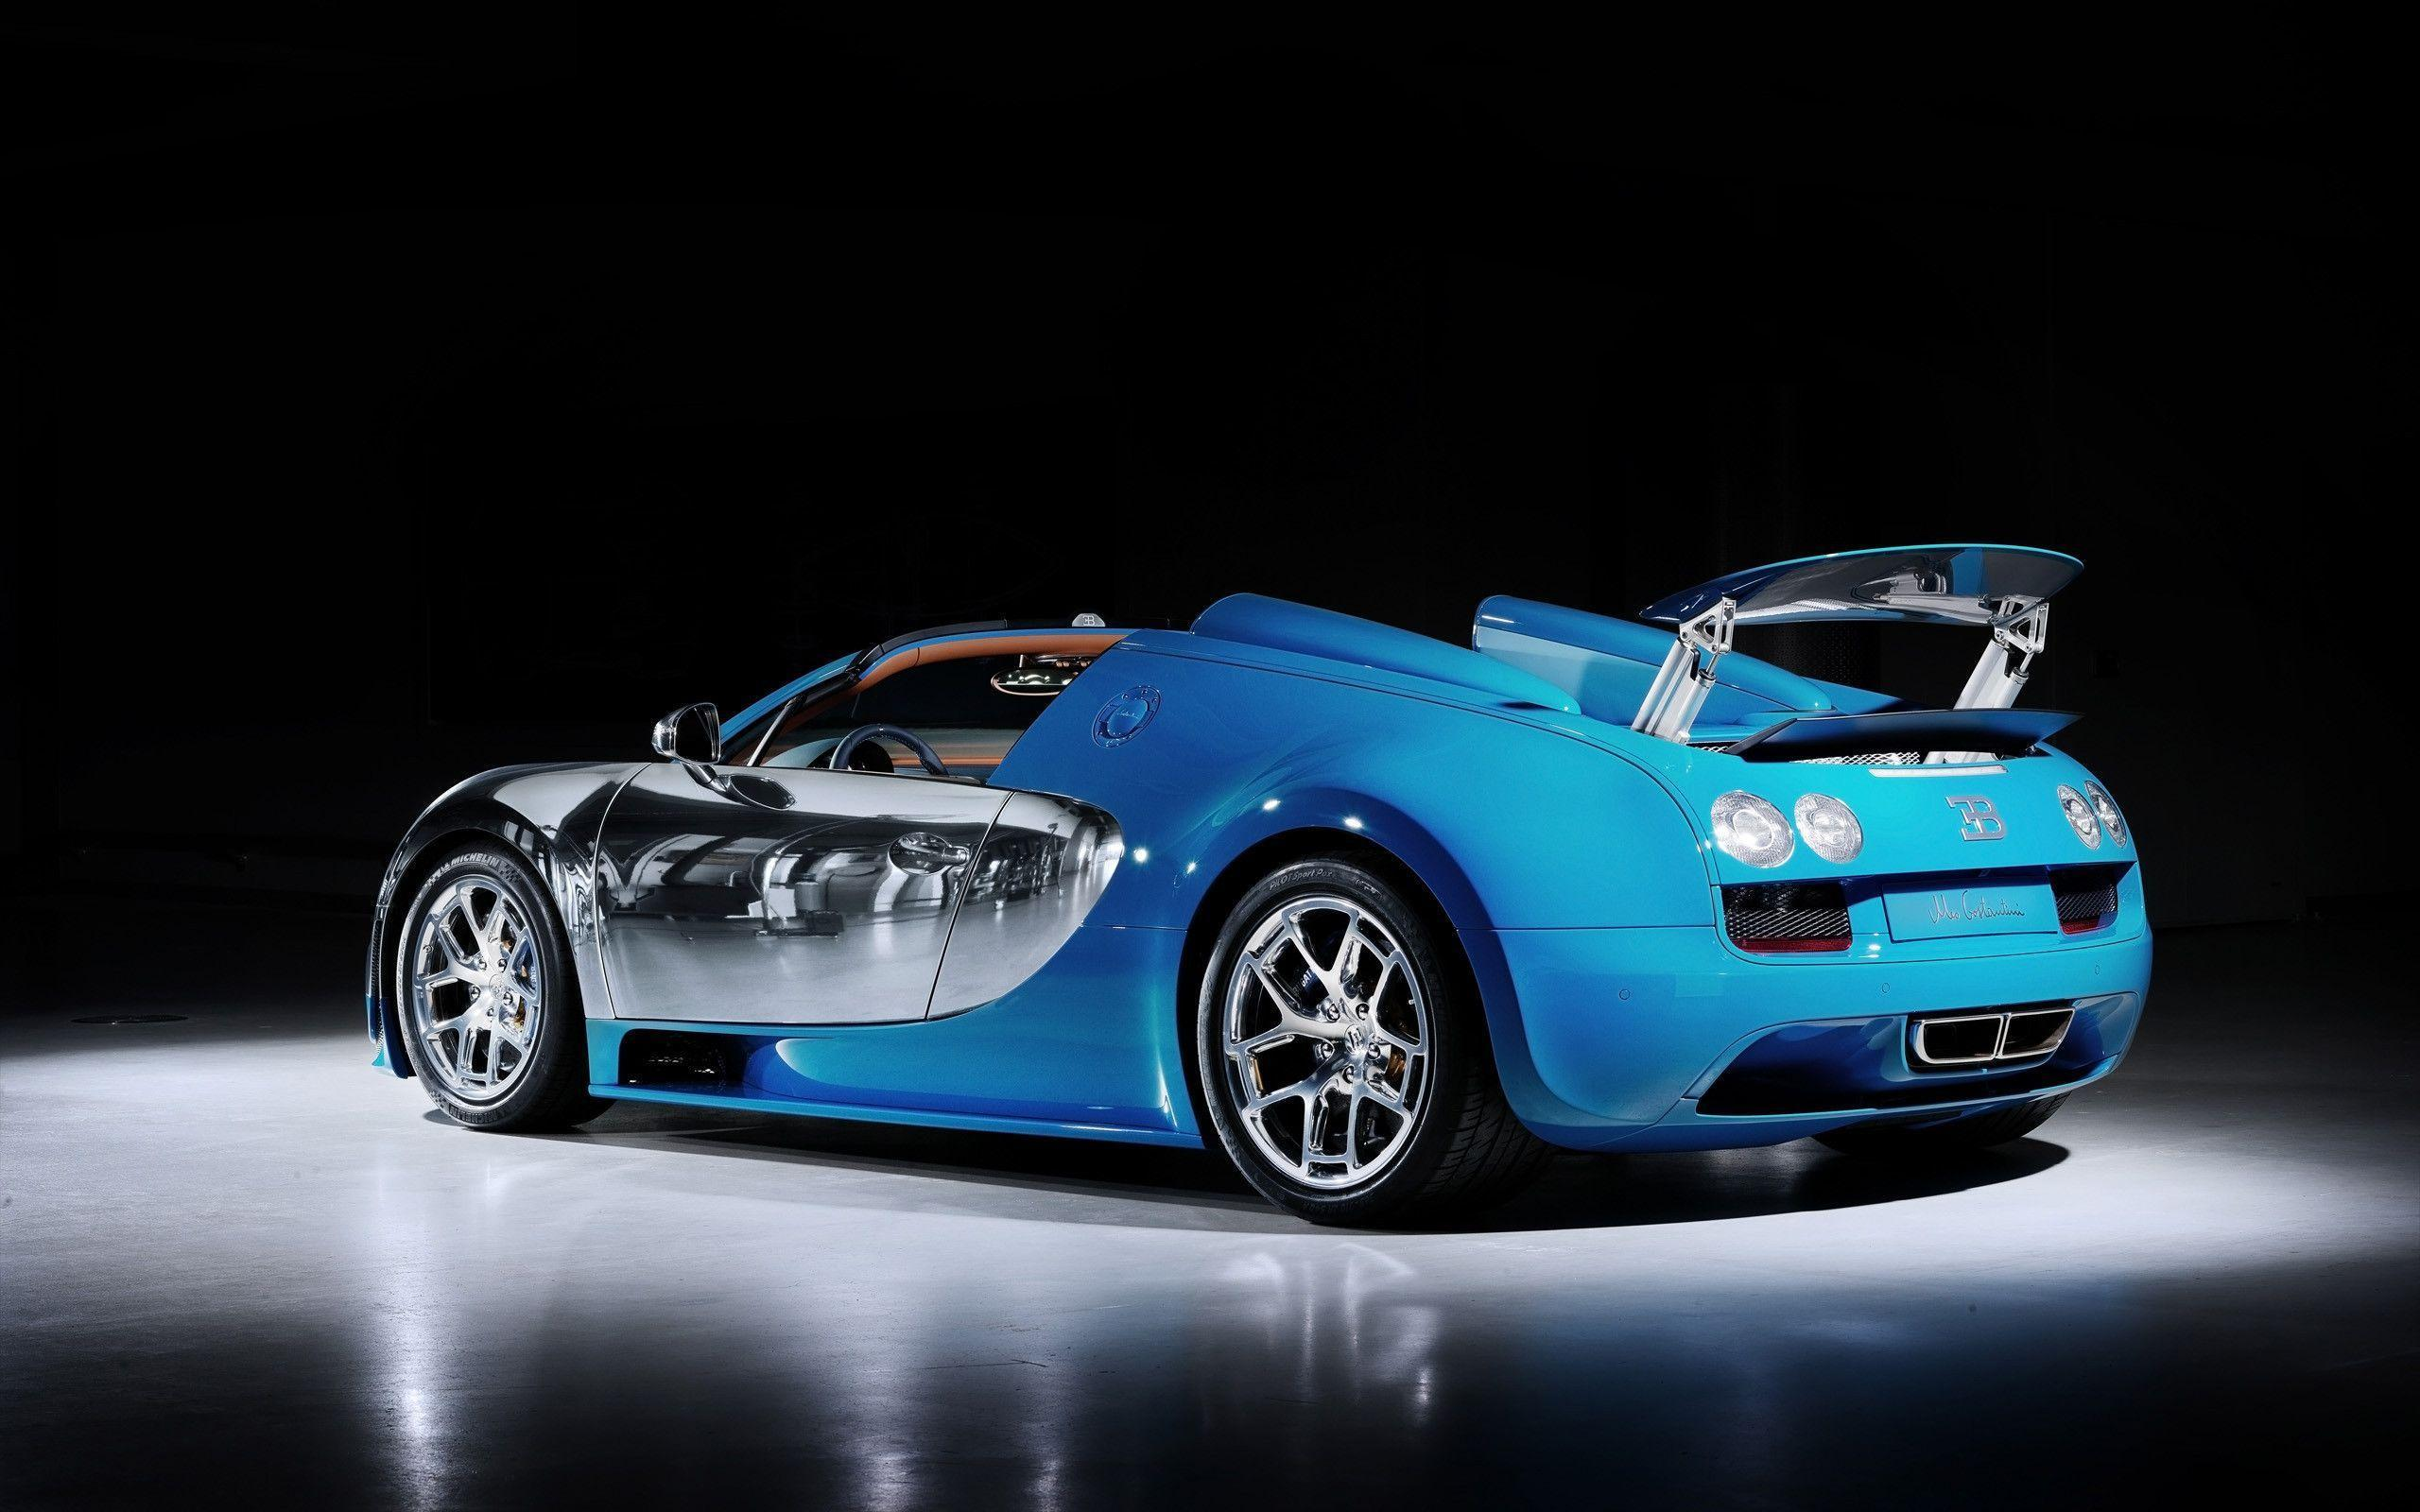 Bugatti Veyron Wallpaper Costantini #586 Wallpaper HD Download ...